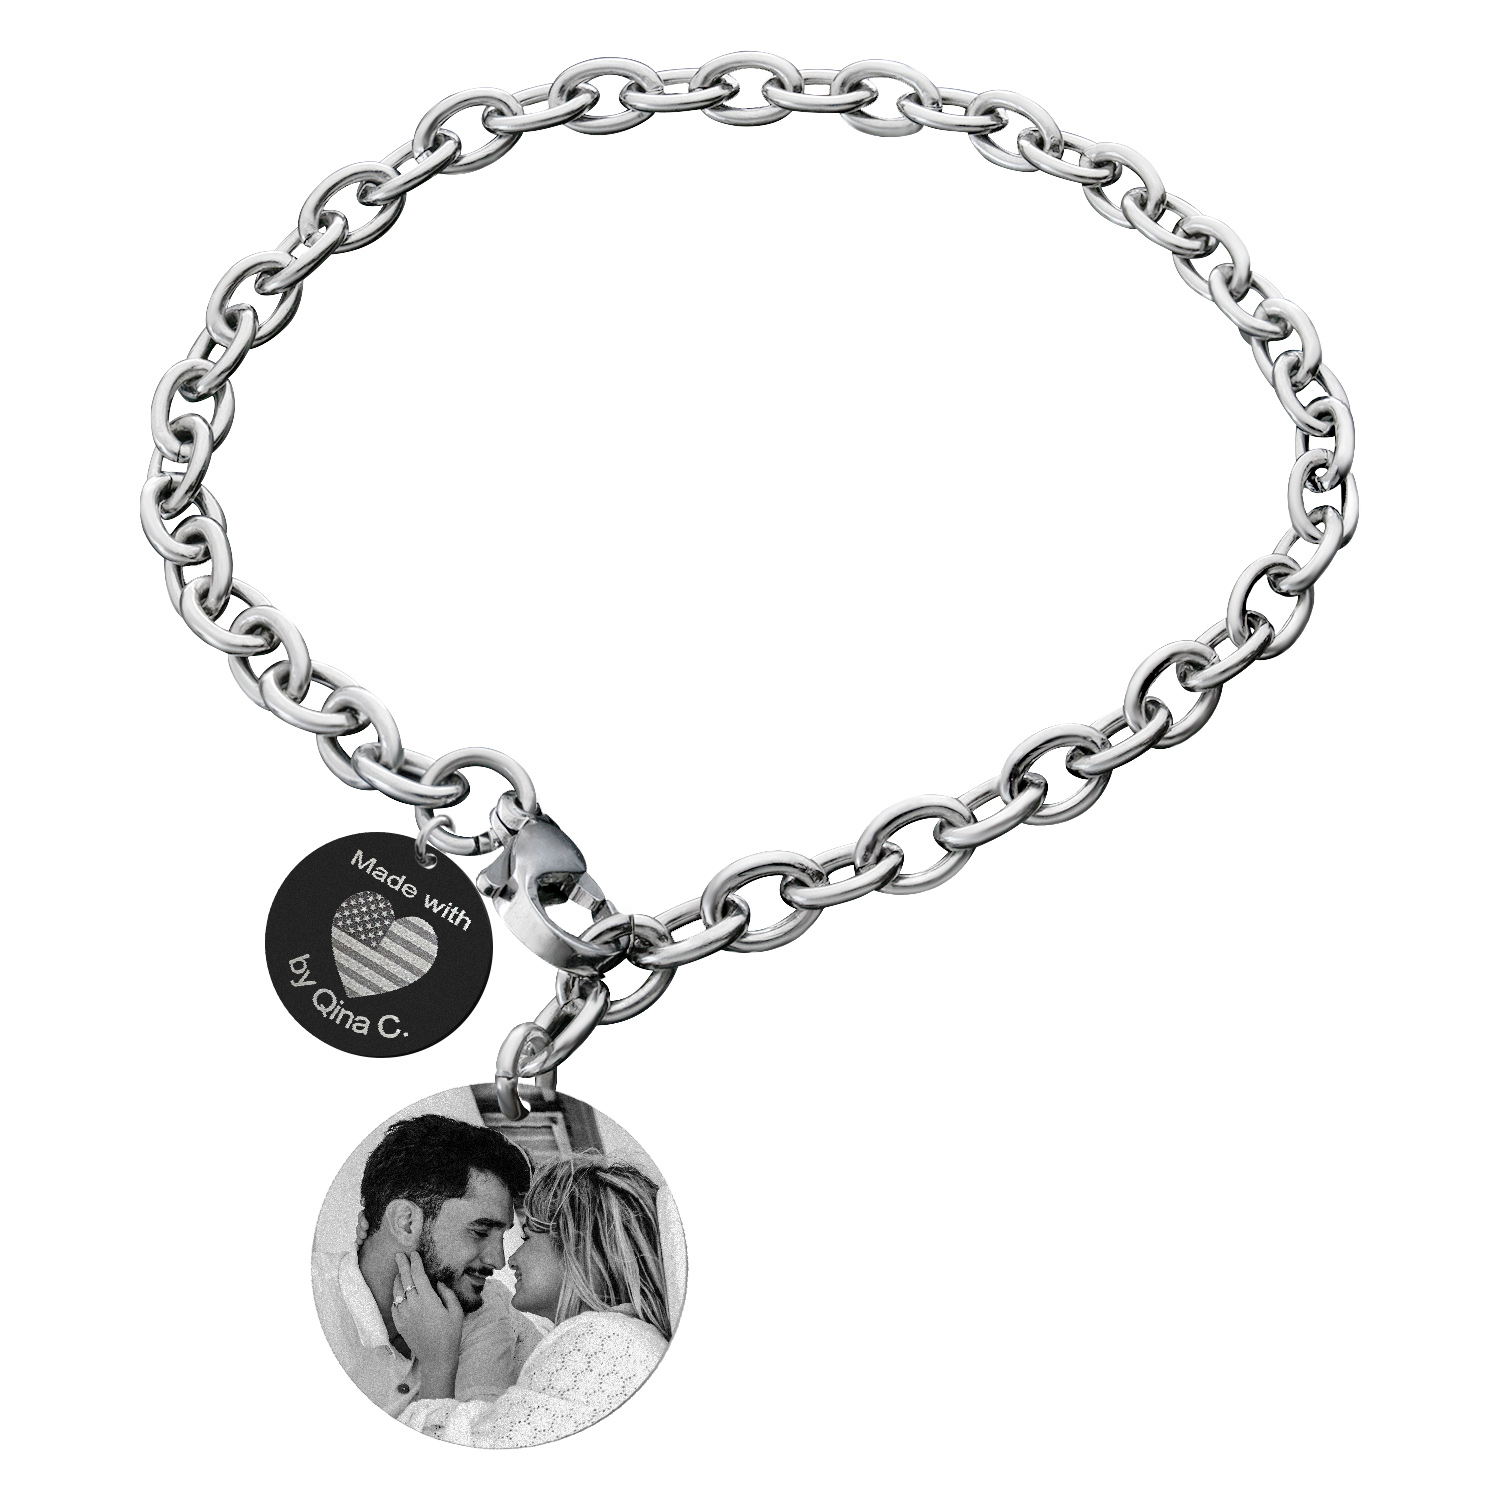 Qina C Family Tree Personalized Engraved Photo/text Stainless Steel Round Disc Tag Ajustable Chain Bracelet Anniversary Birthday Gift F/ Him Her